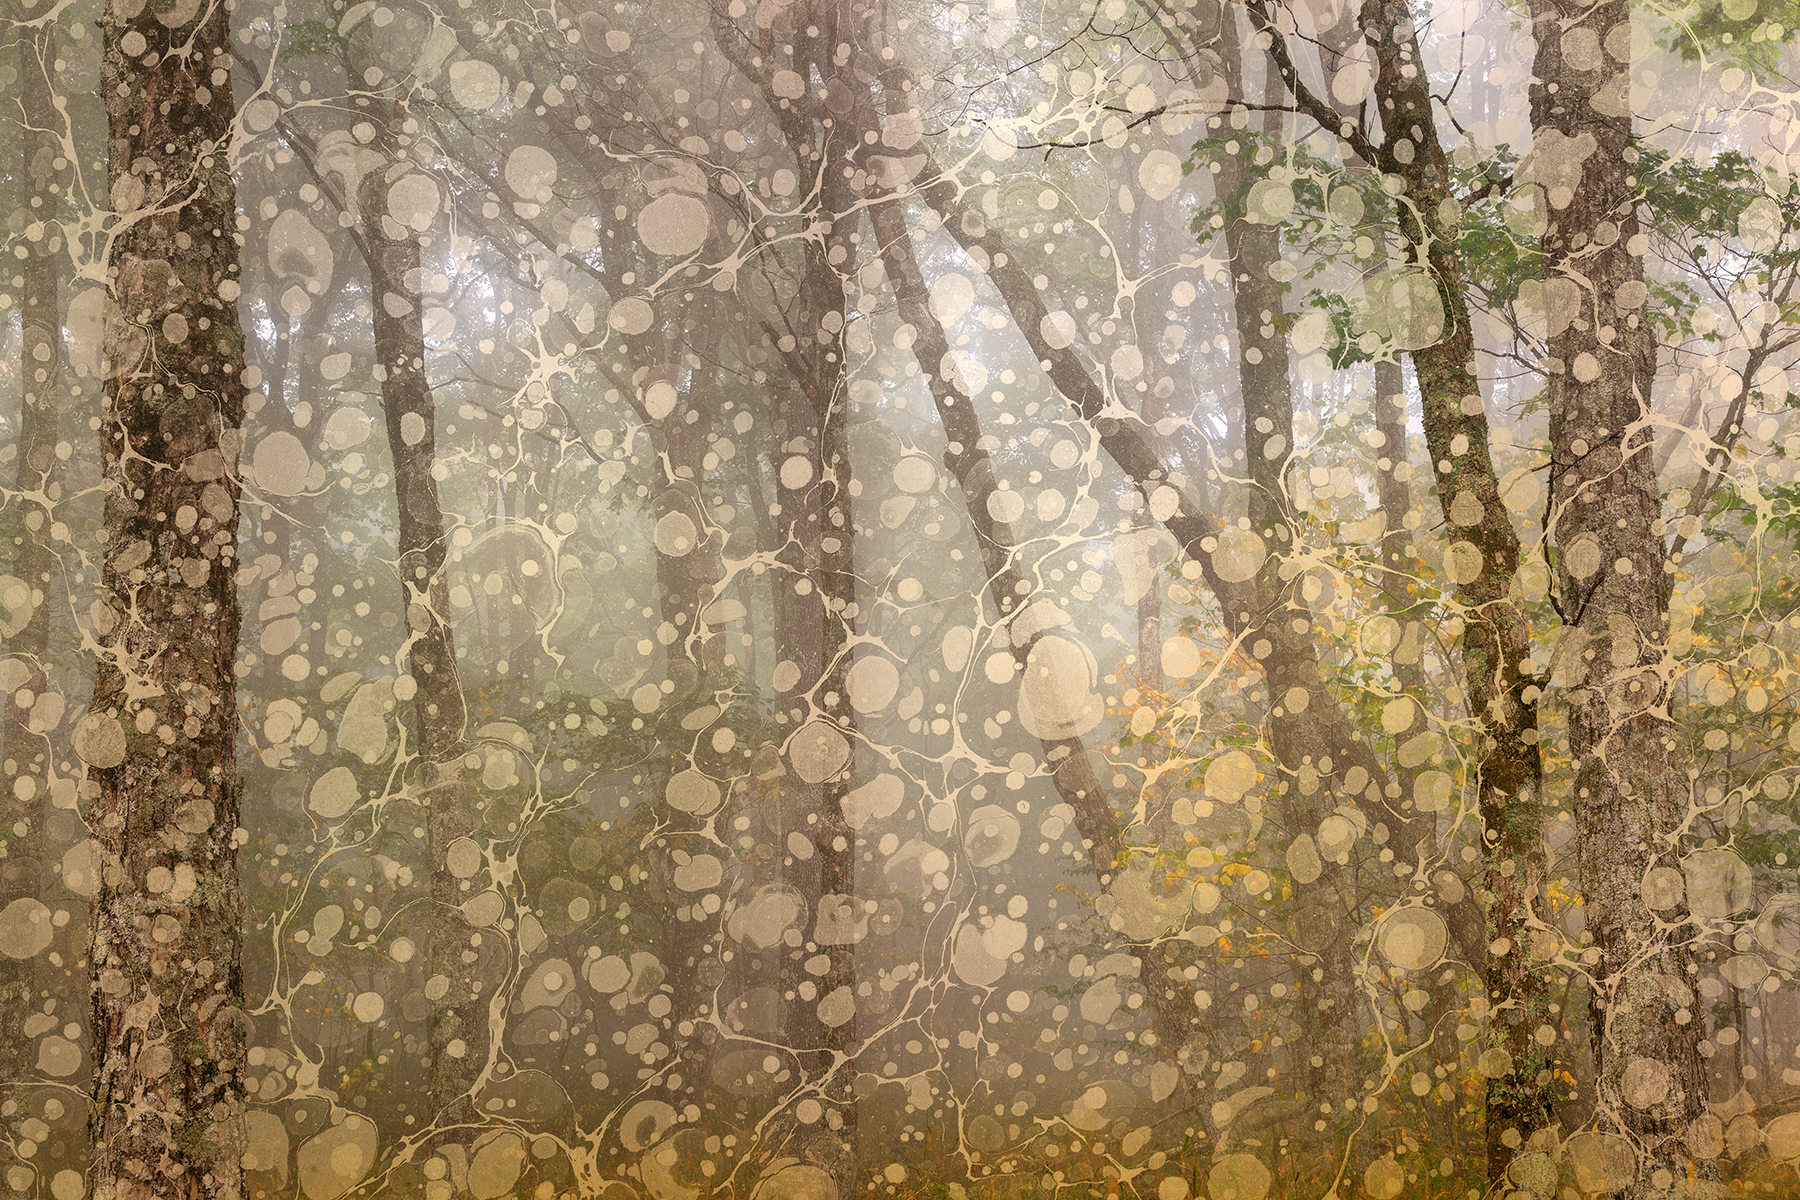 Marbled Mist Forest - Spruce Knob, Abstract, Old, Riverton, Retro, HQ Photo